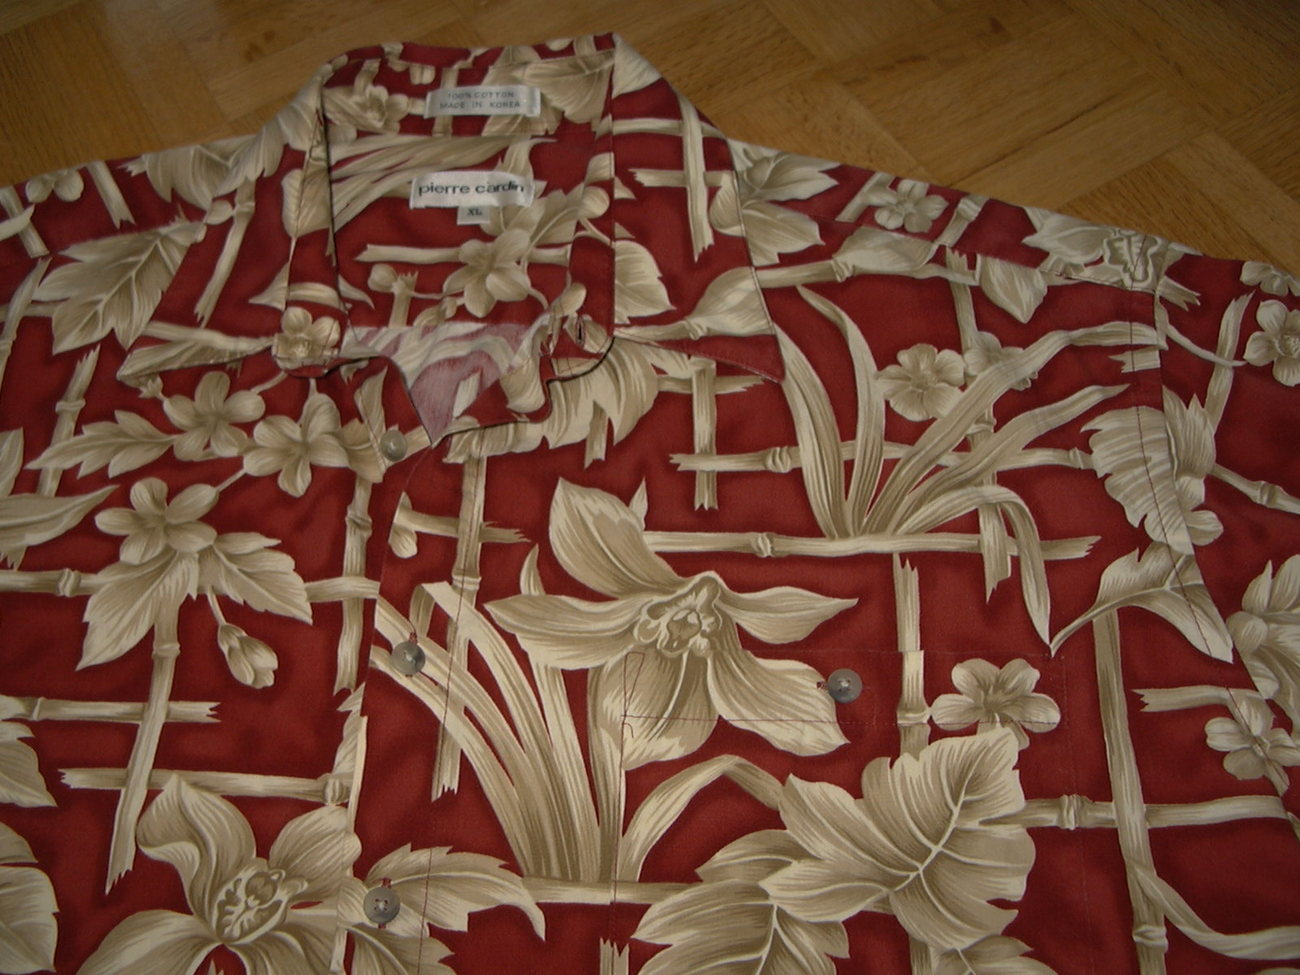 HH12 Hawaiian Pierre Cardin Cotton Tropical Shirt Red Bamboo Size 48 XL